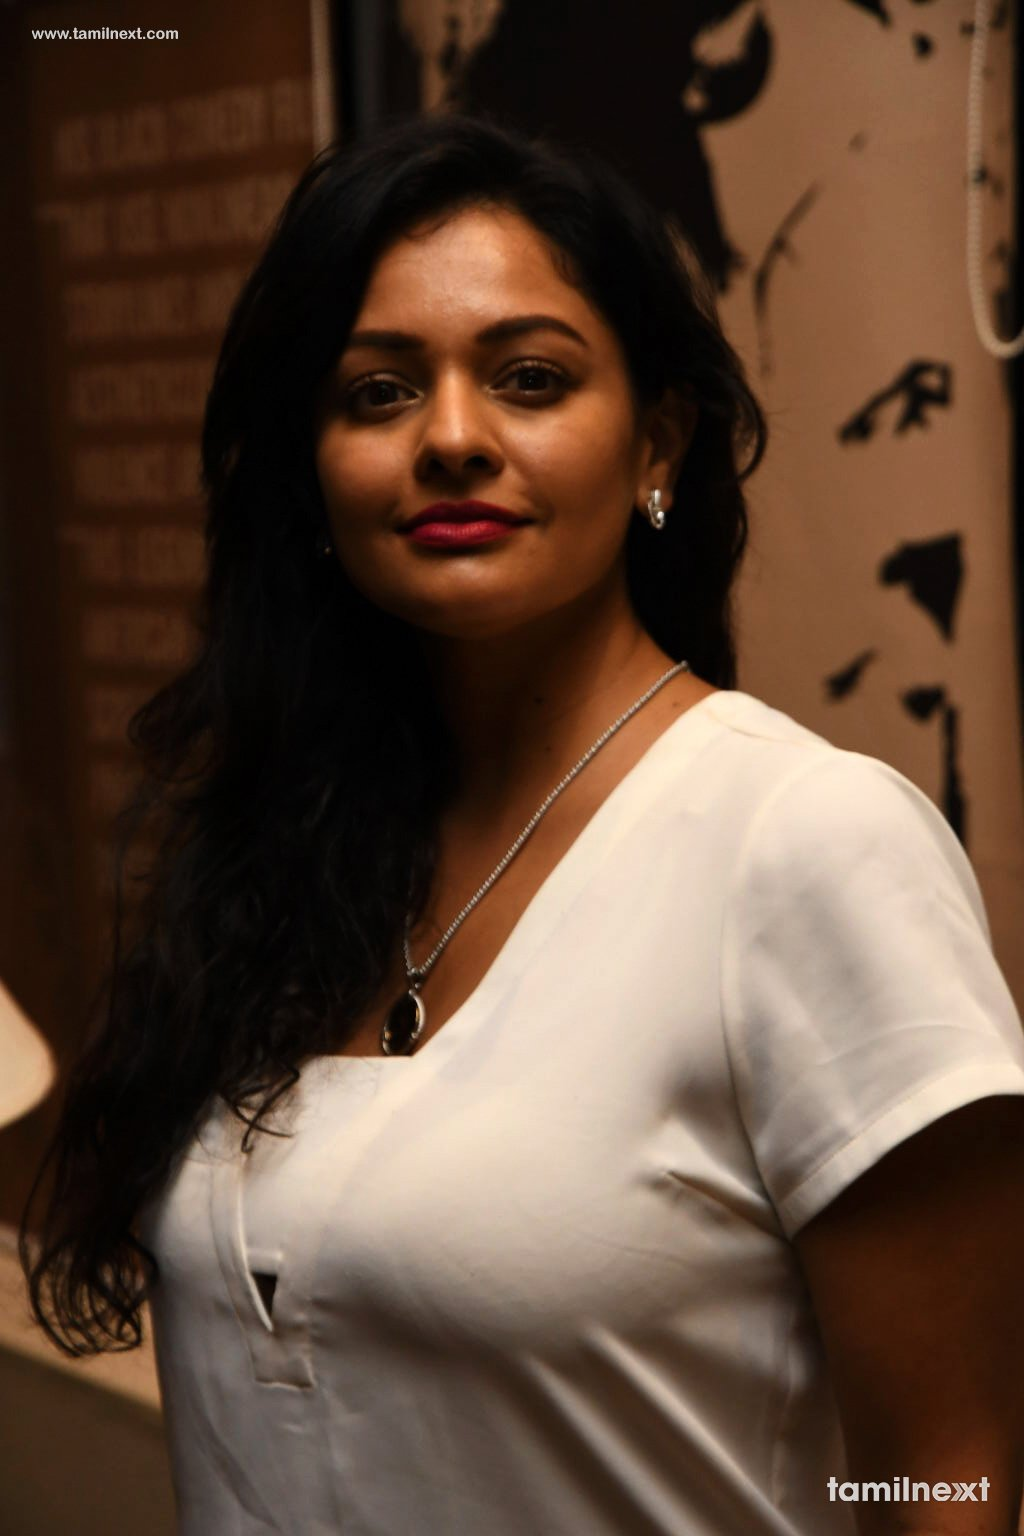 Discussion on this topic: Edna Lawrence, pooja-kumar/